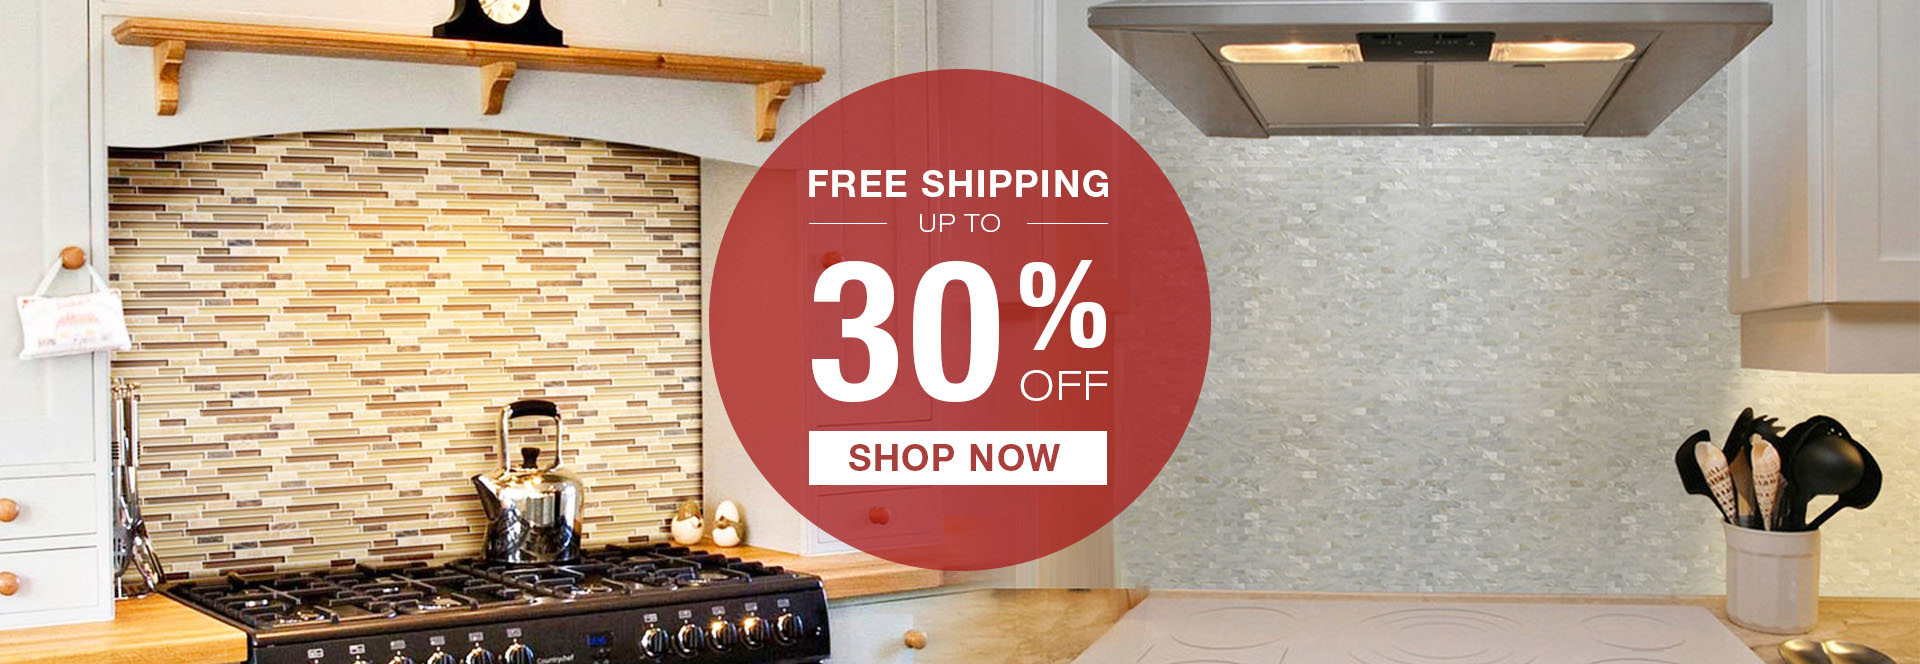 Discount for all backsplash tiles on Labor Day